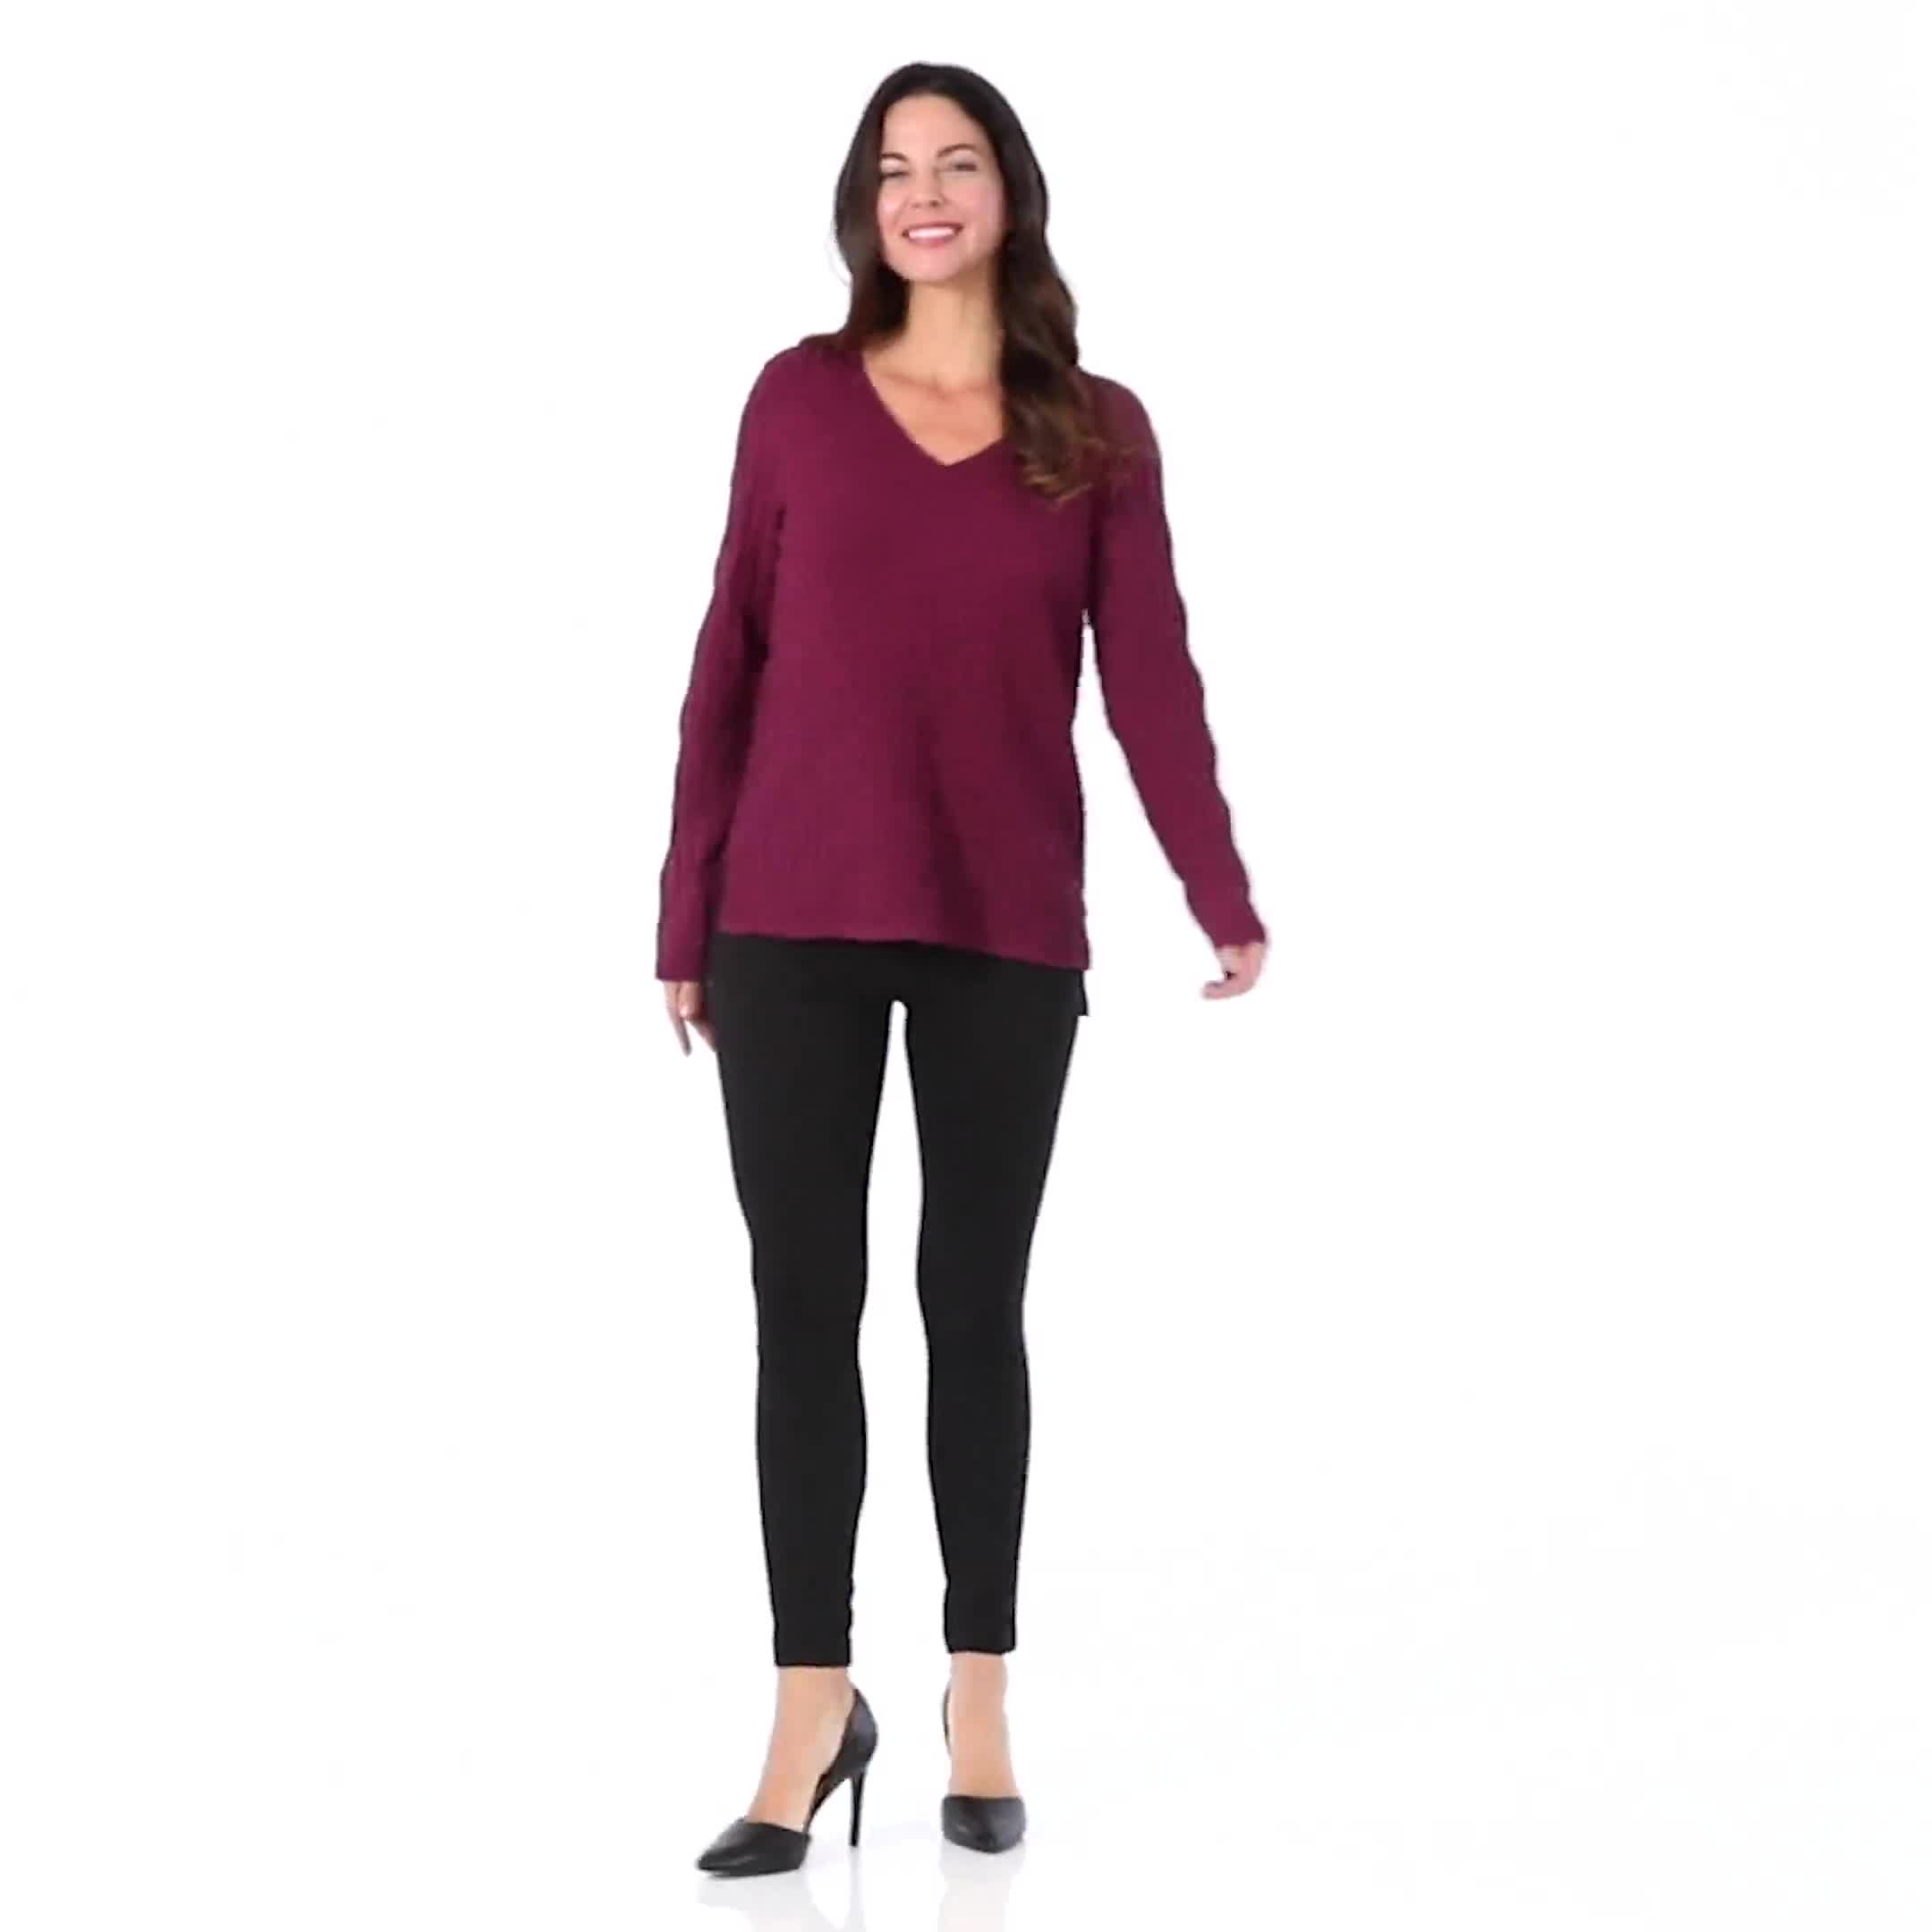 The Roz & Ali Everyday Pullover - Video